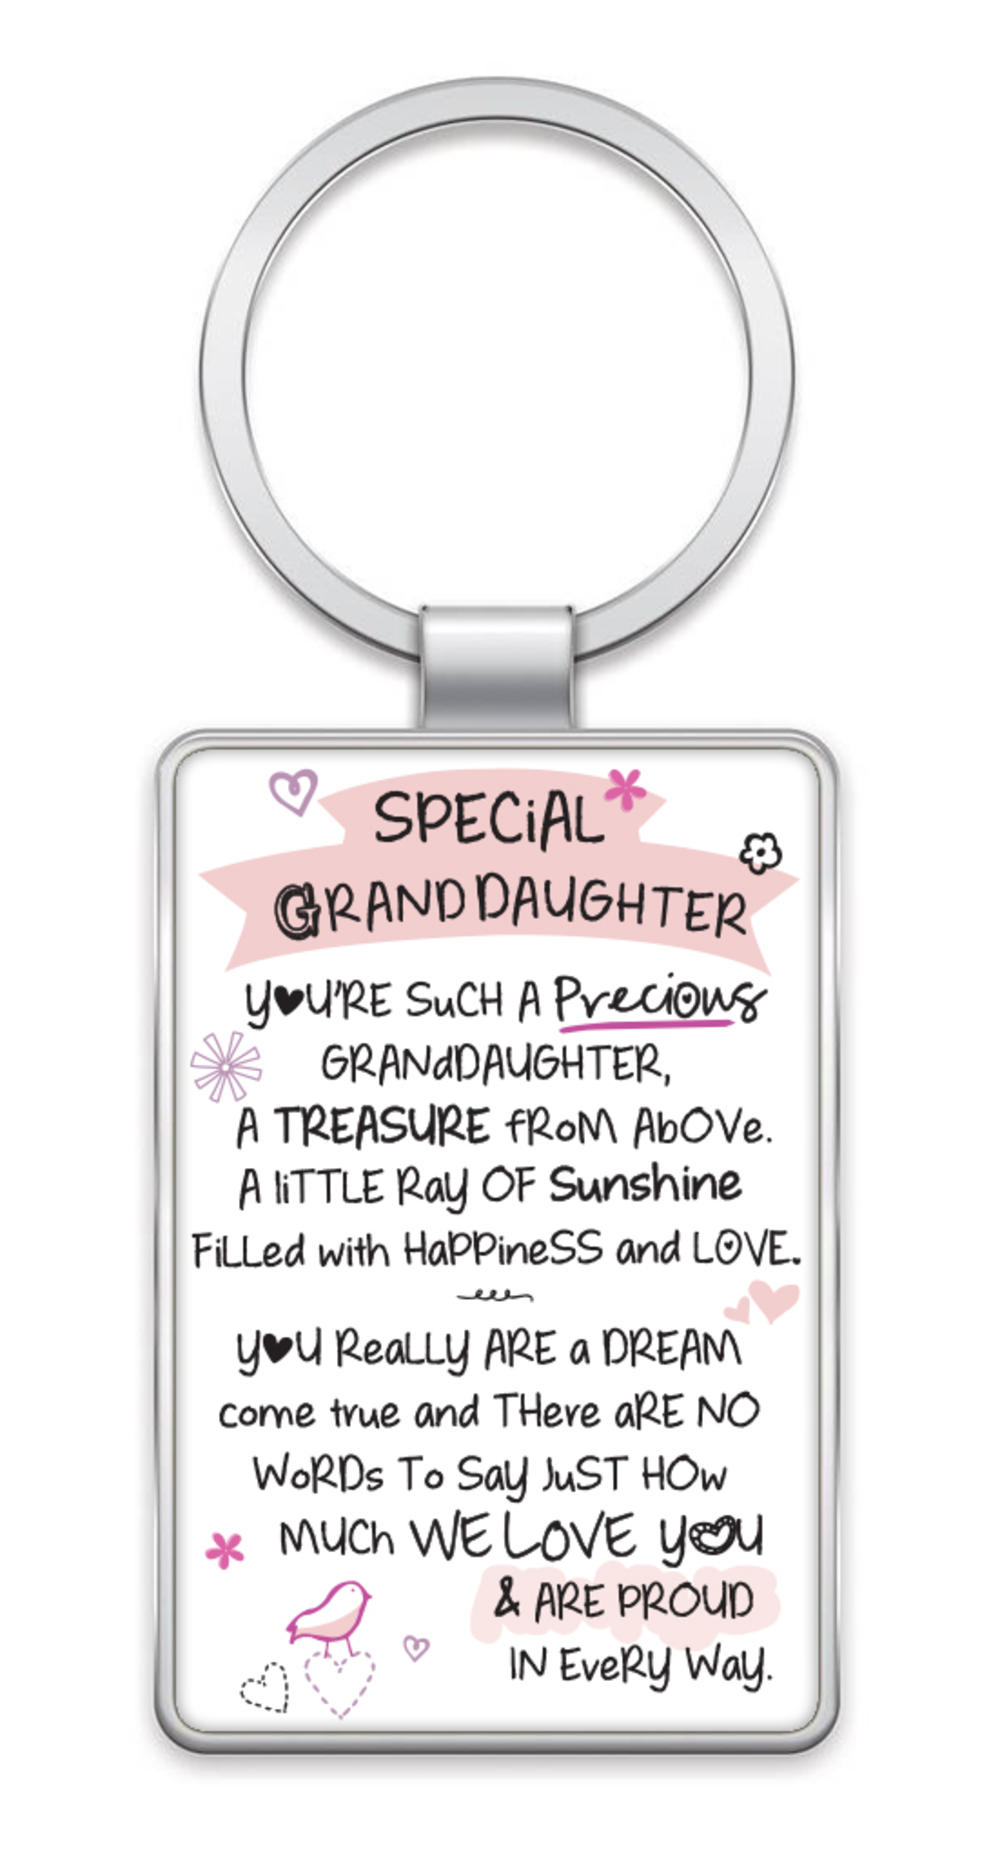 Special Granddaughter Inspired Words Metal Keyring